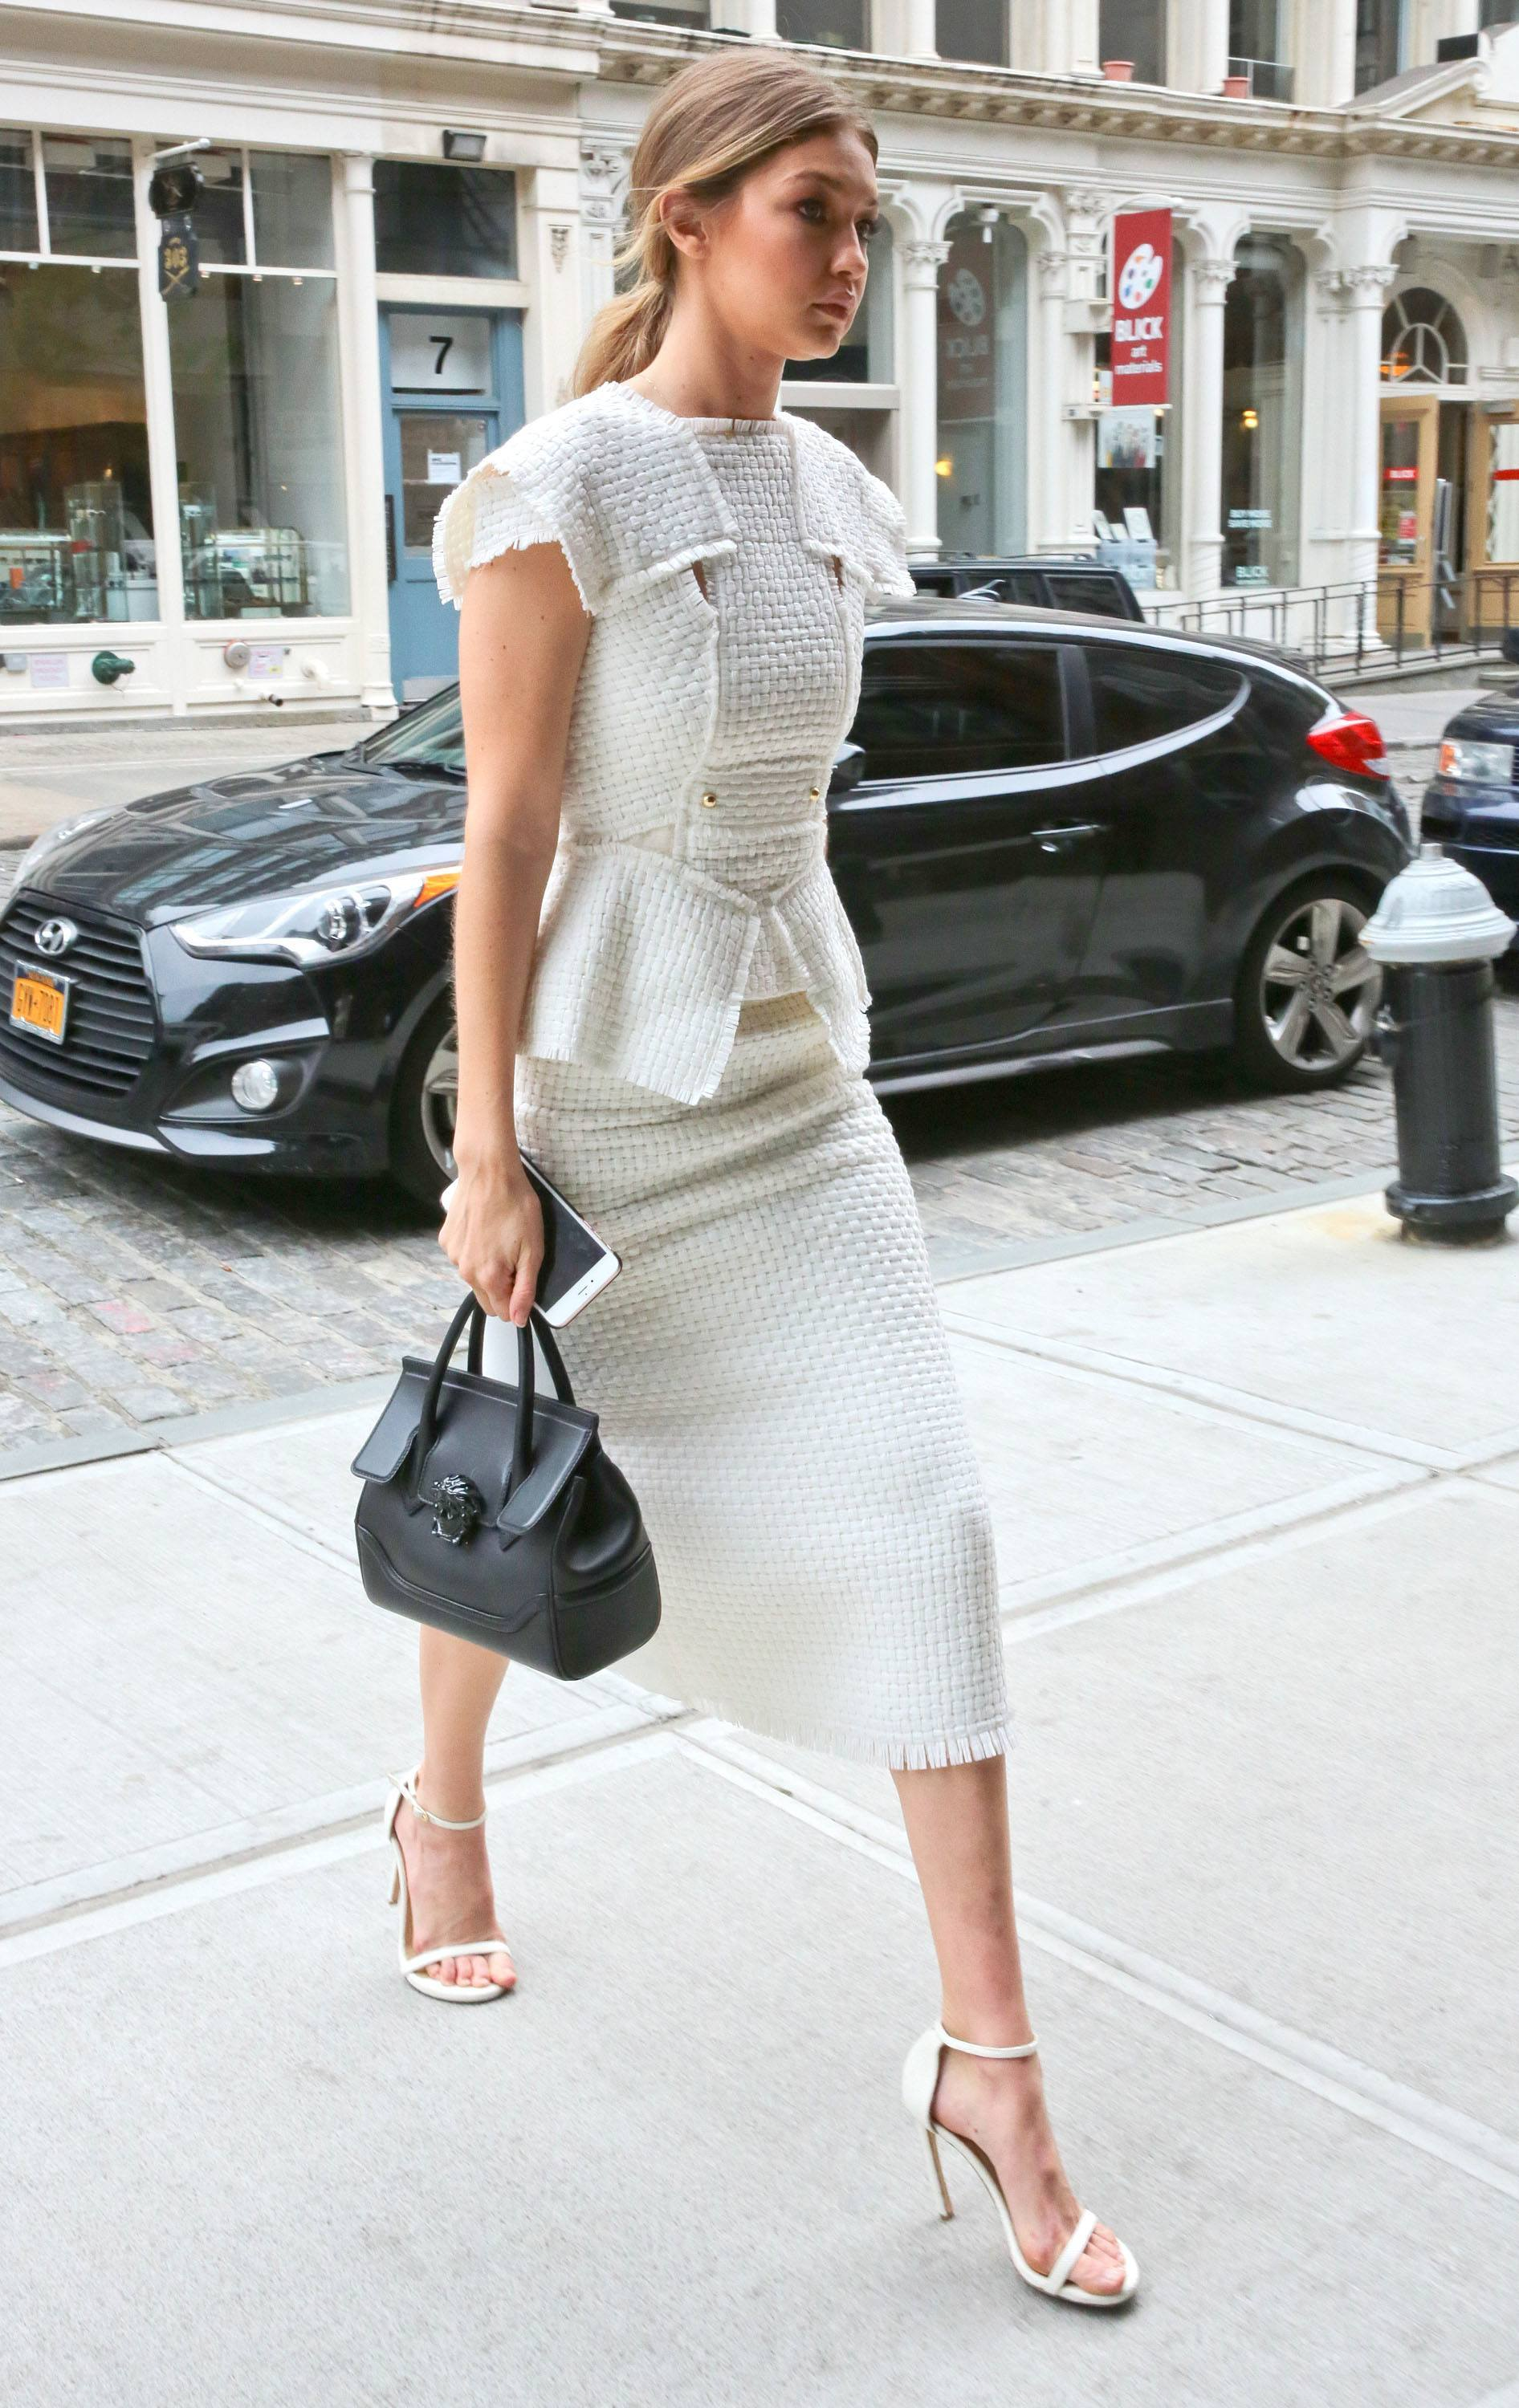 Top Street Style: Lady Gaga, Florence Welch, Vanessa